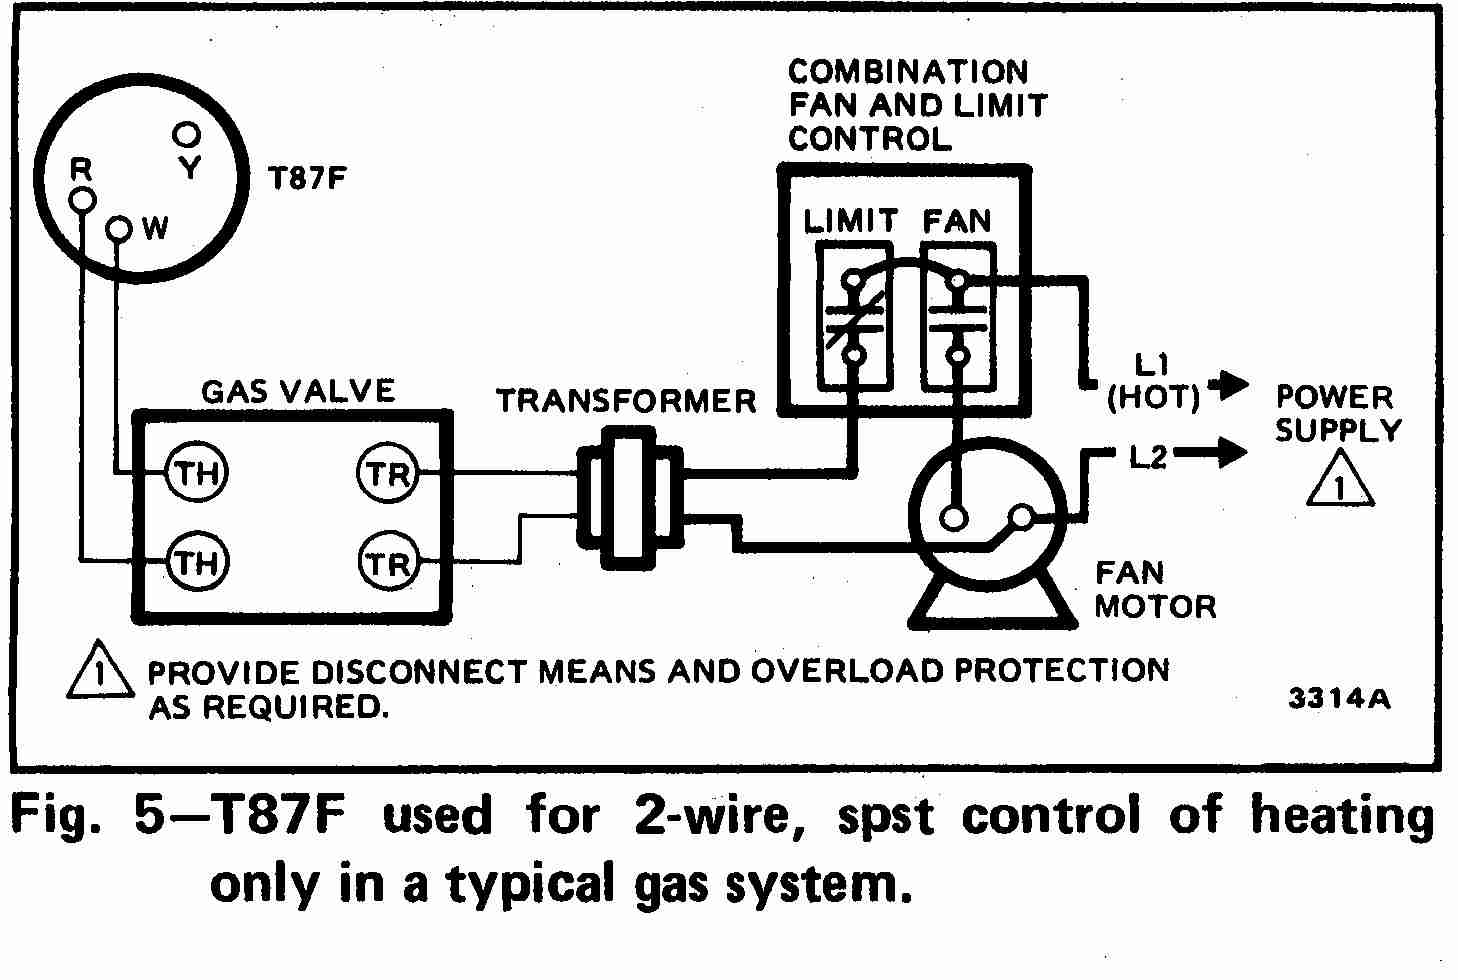 TT_T87F_0002_2Wg_DJF room thermostat wiring diagrams for hvac systems heater thermostat wiring diagram at gsmx.co